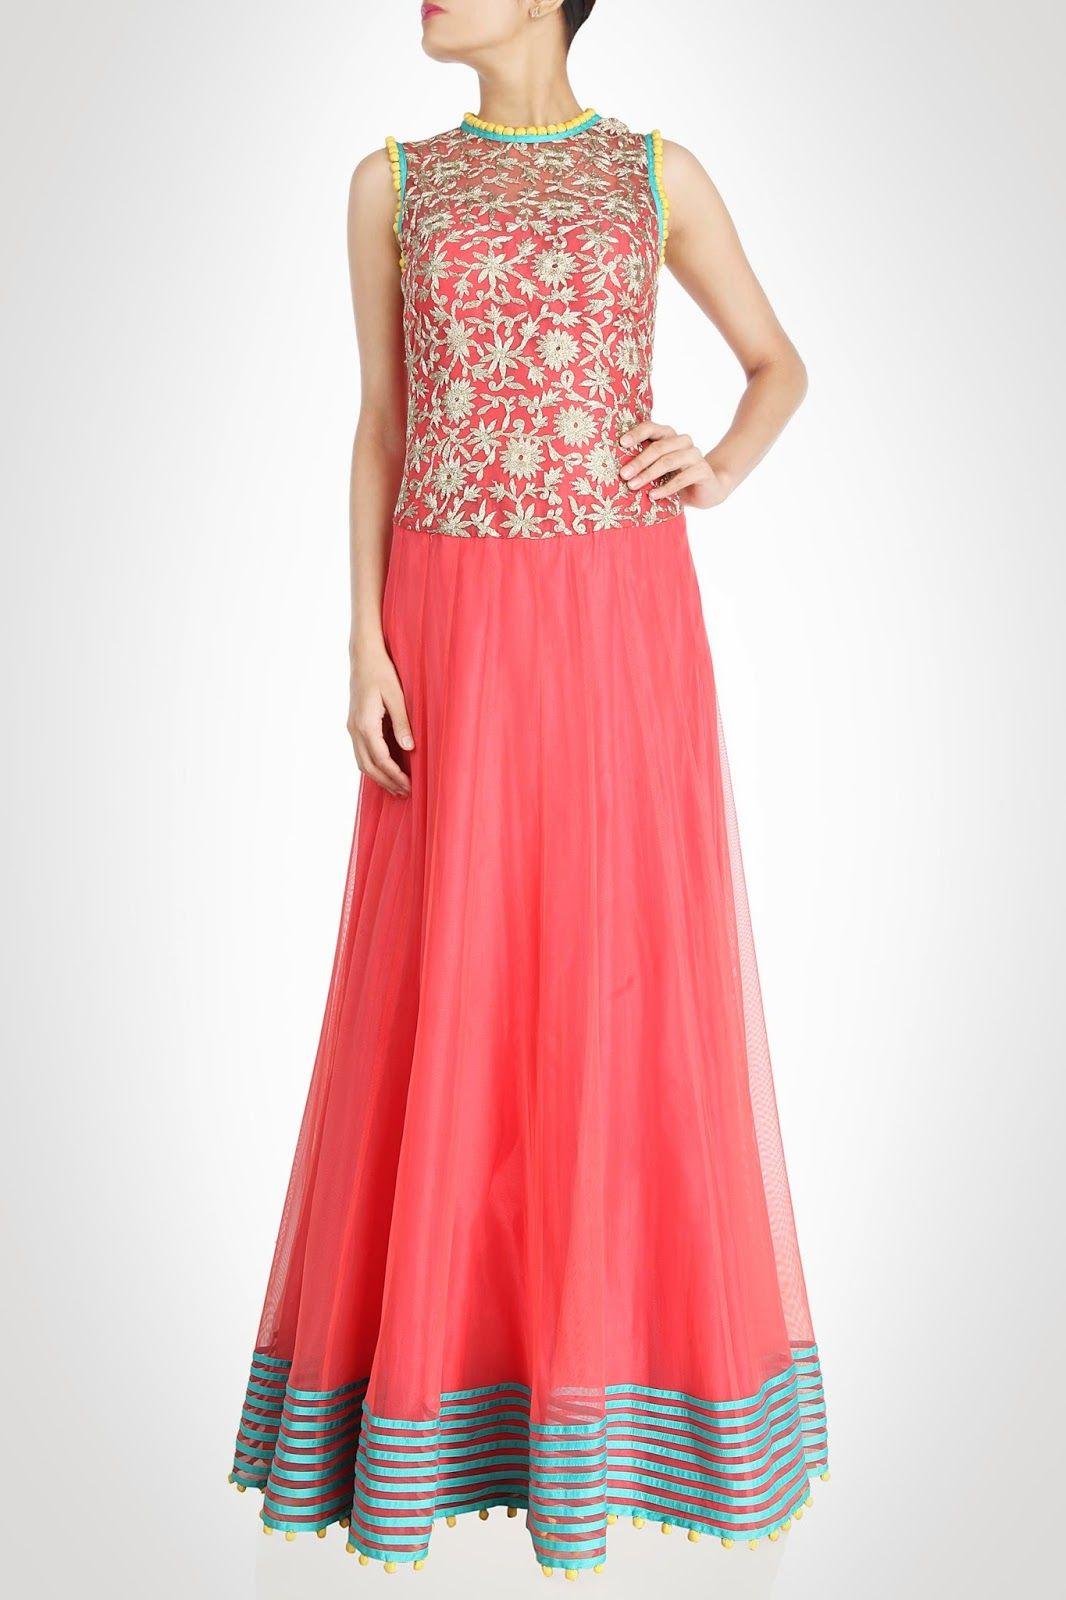 e8c12fdcca9ed Maxi Dress Indian Style   indian inspired   Dress indian style ...